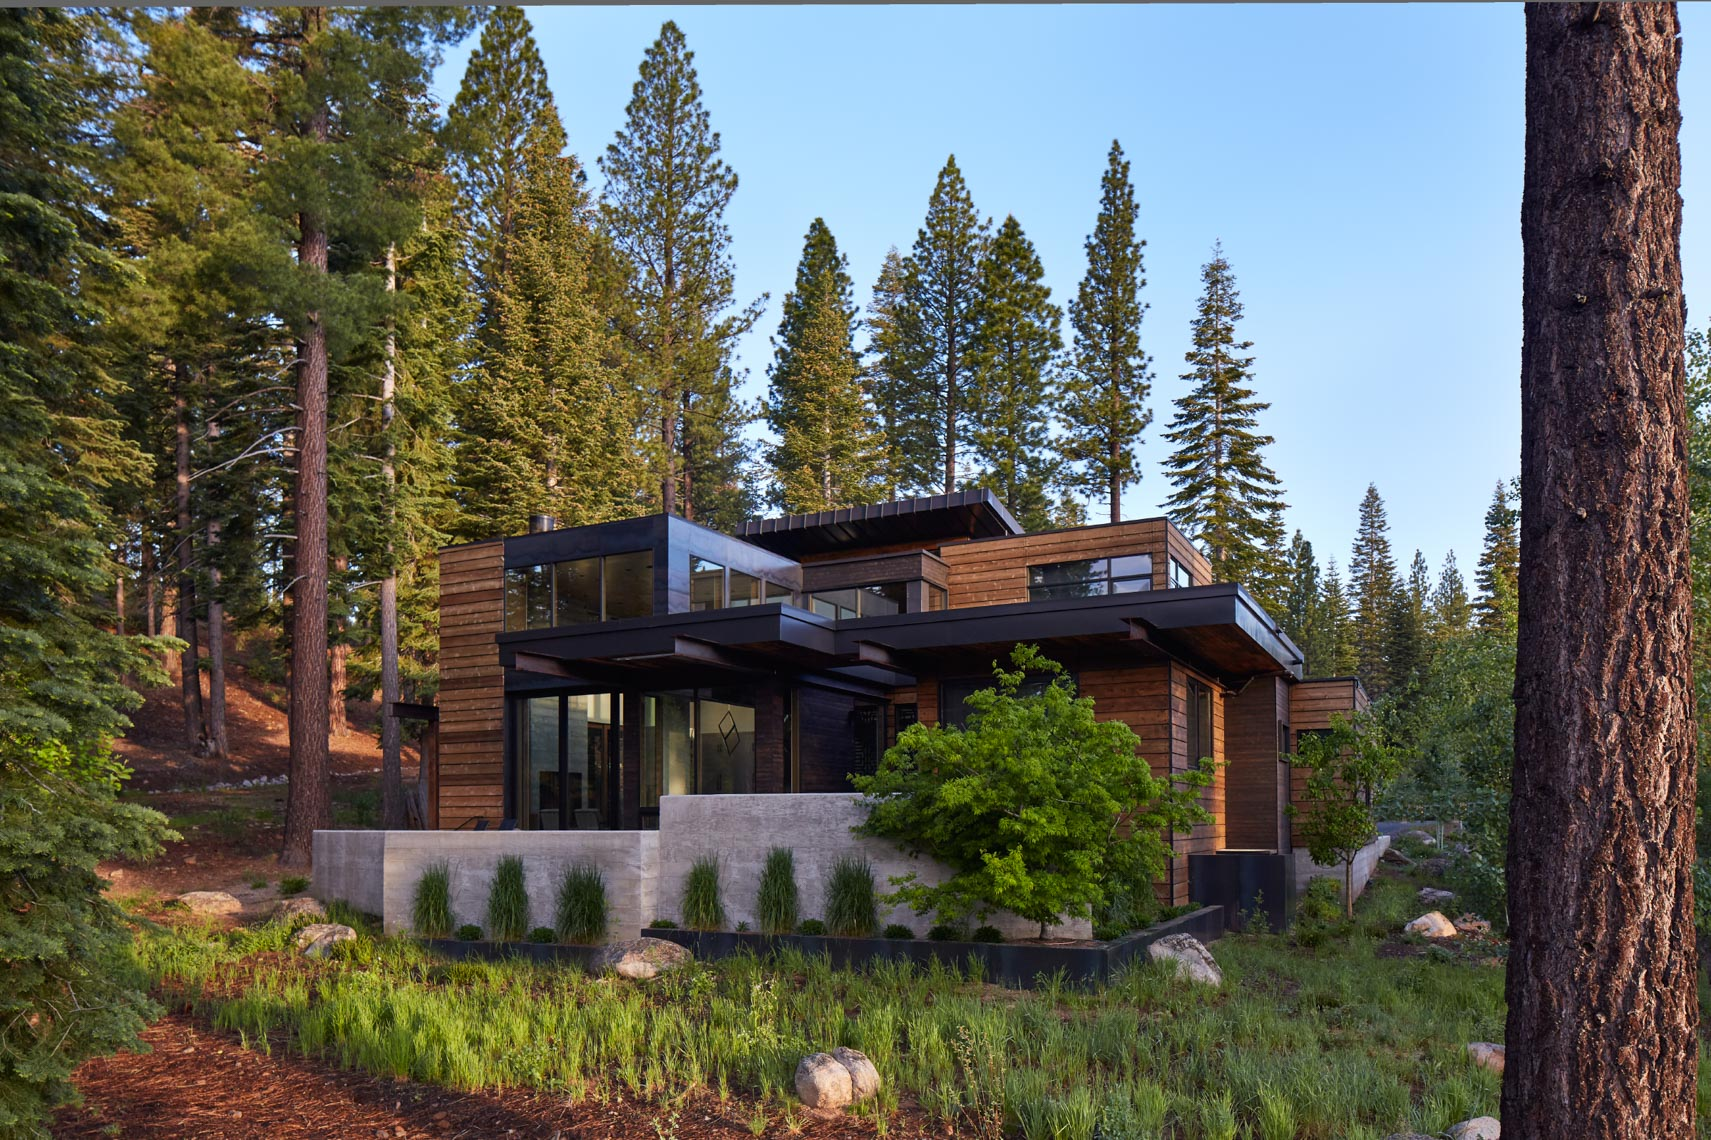 Modern wood and metal home in Tahoe mountains surrounded by green forrest San Francisco architectural photographer